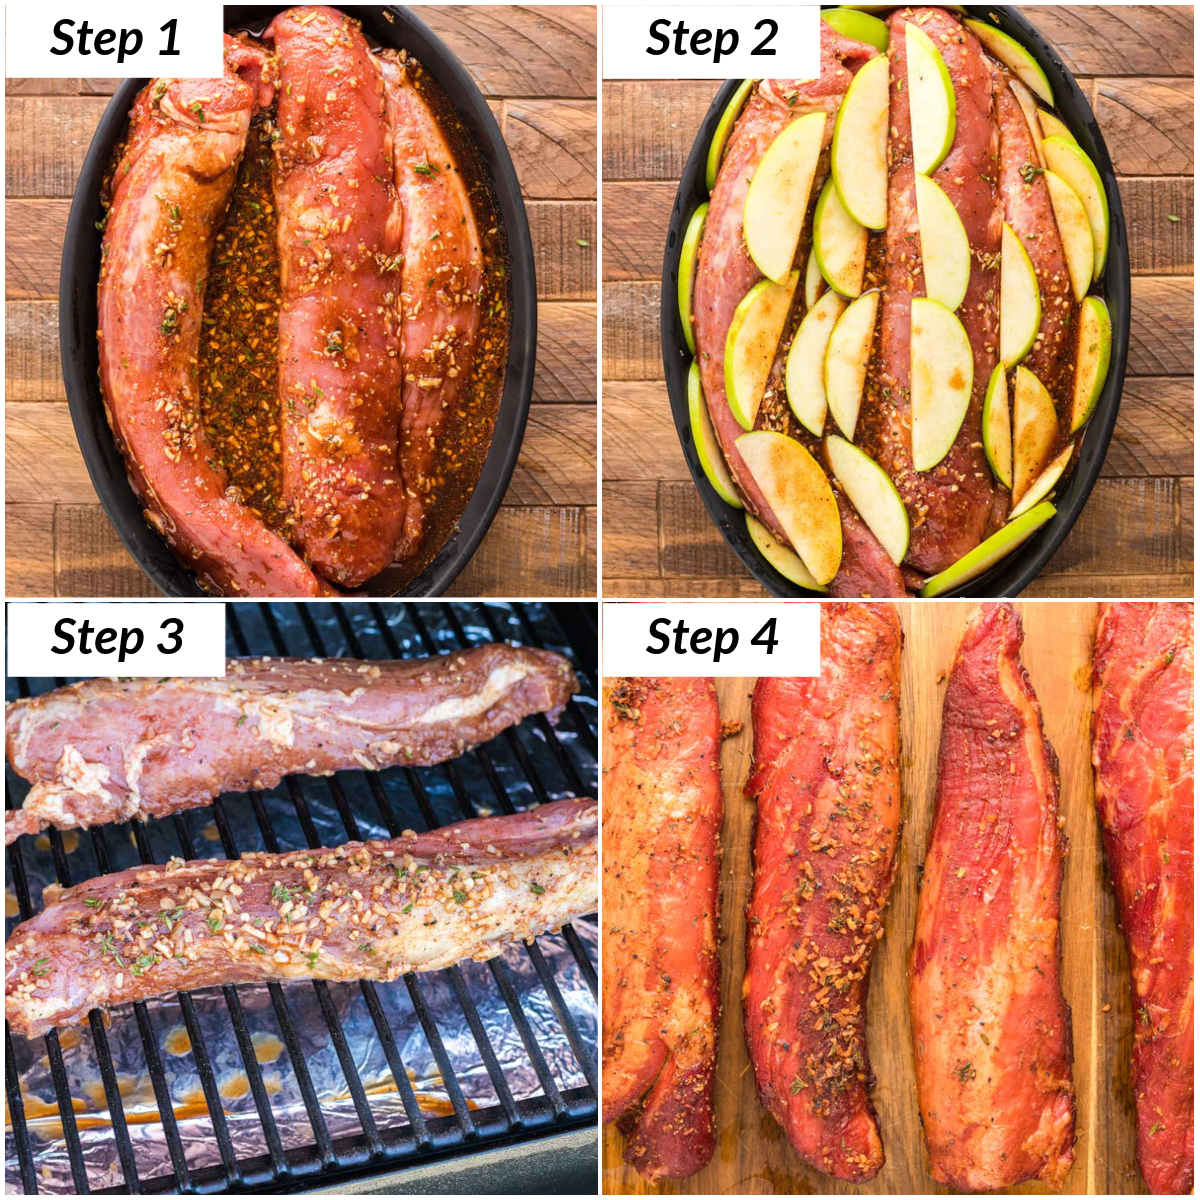 image collage showing the steps for smoking pork tenderloin